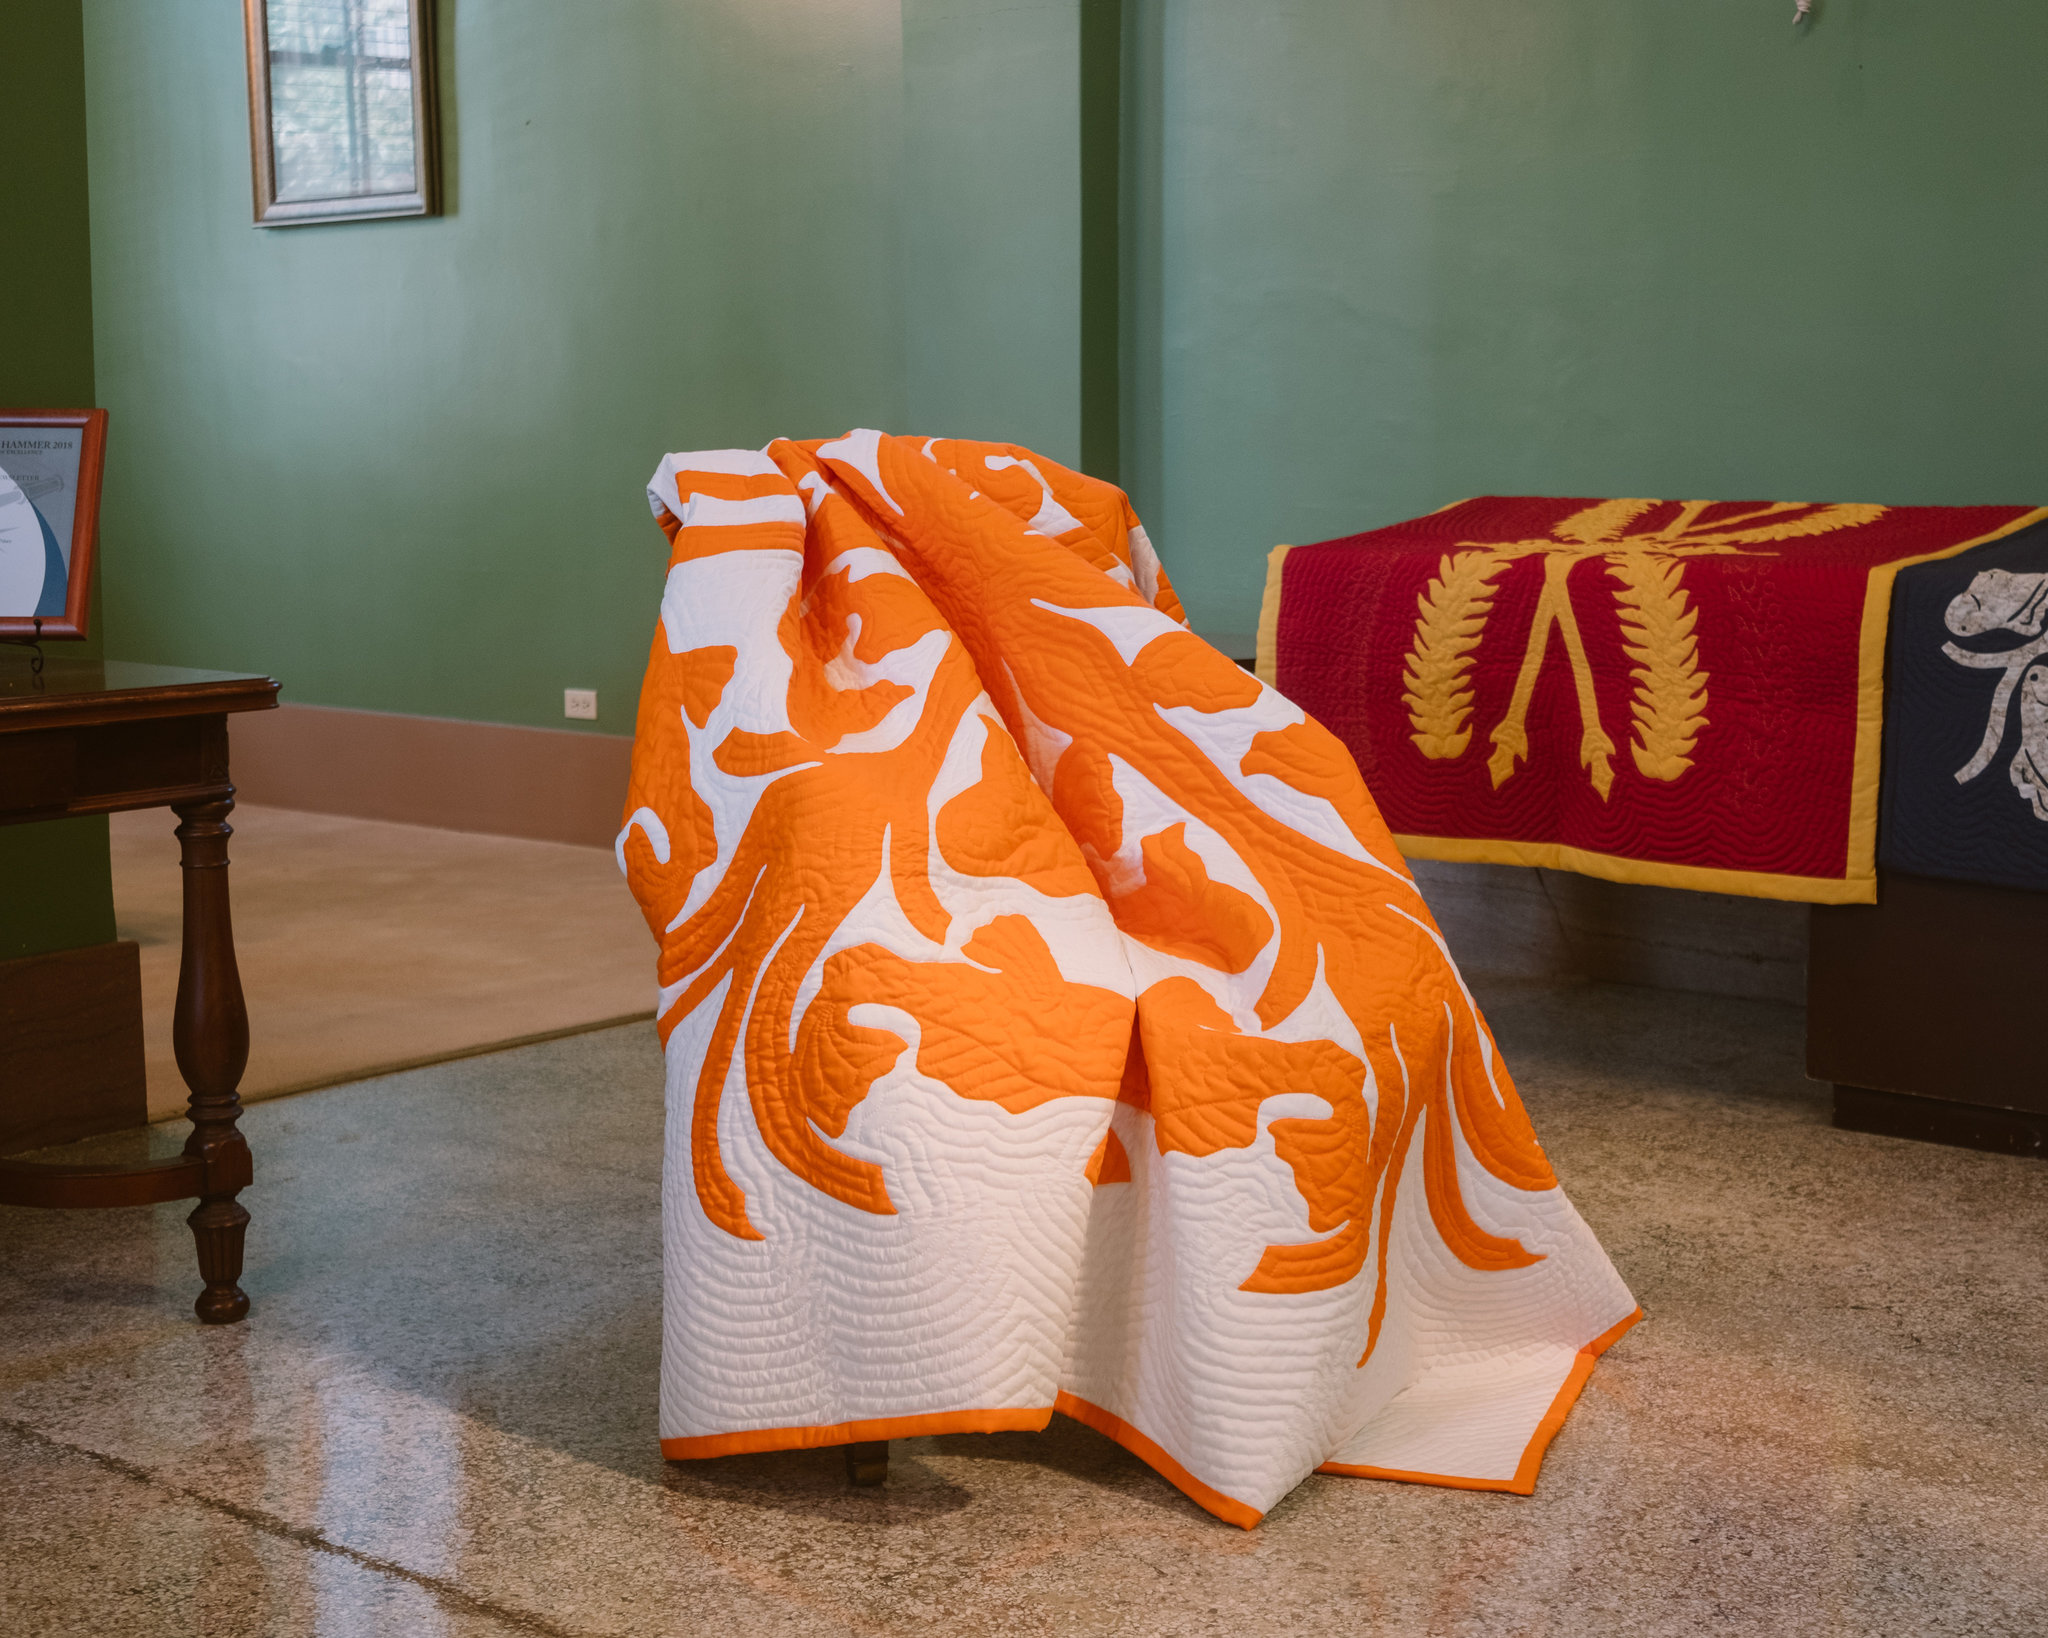 One of the Hawaiian quilts featured by Loewe at this year's Salone del Mobile in Milan / Photo: Josiah Patterson.